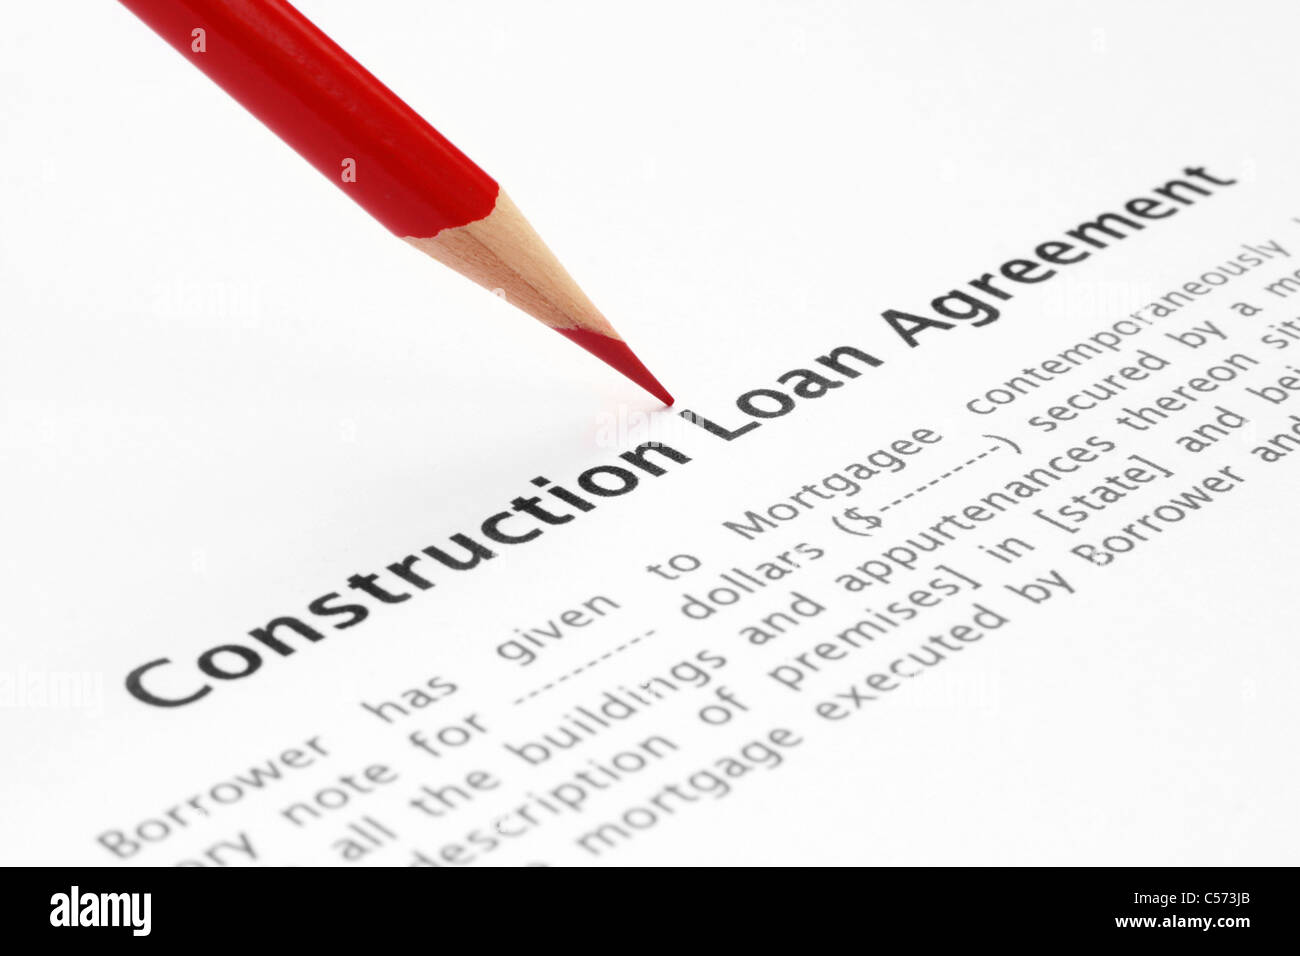 Construction loan agreement Photo Royalty Free Image – Construction Loan Agreement